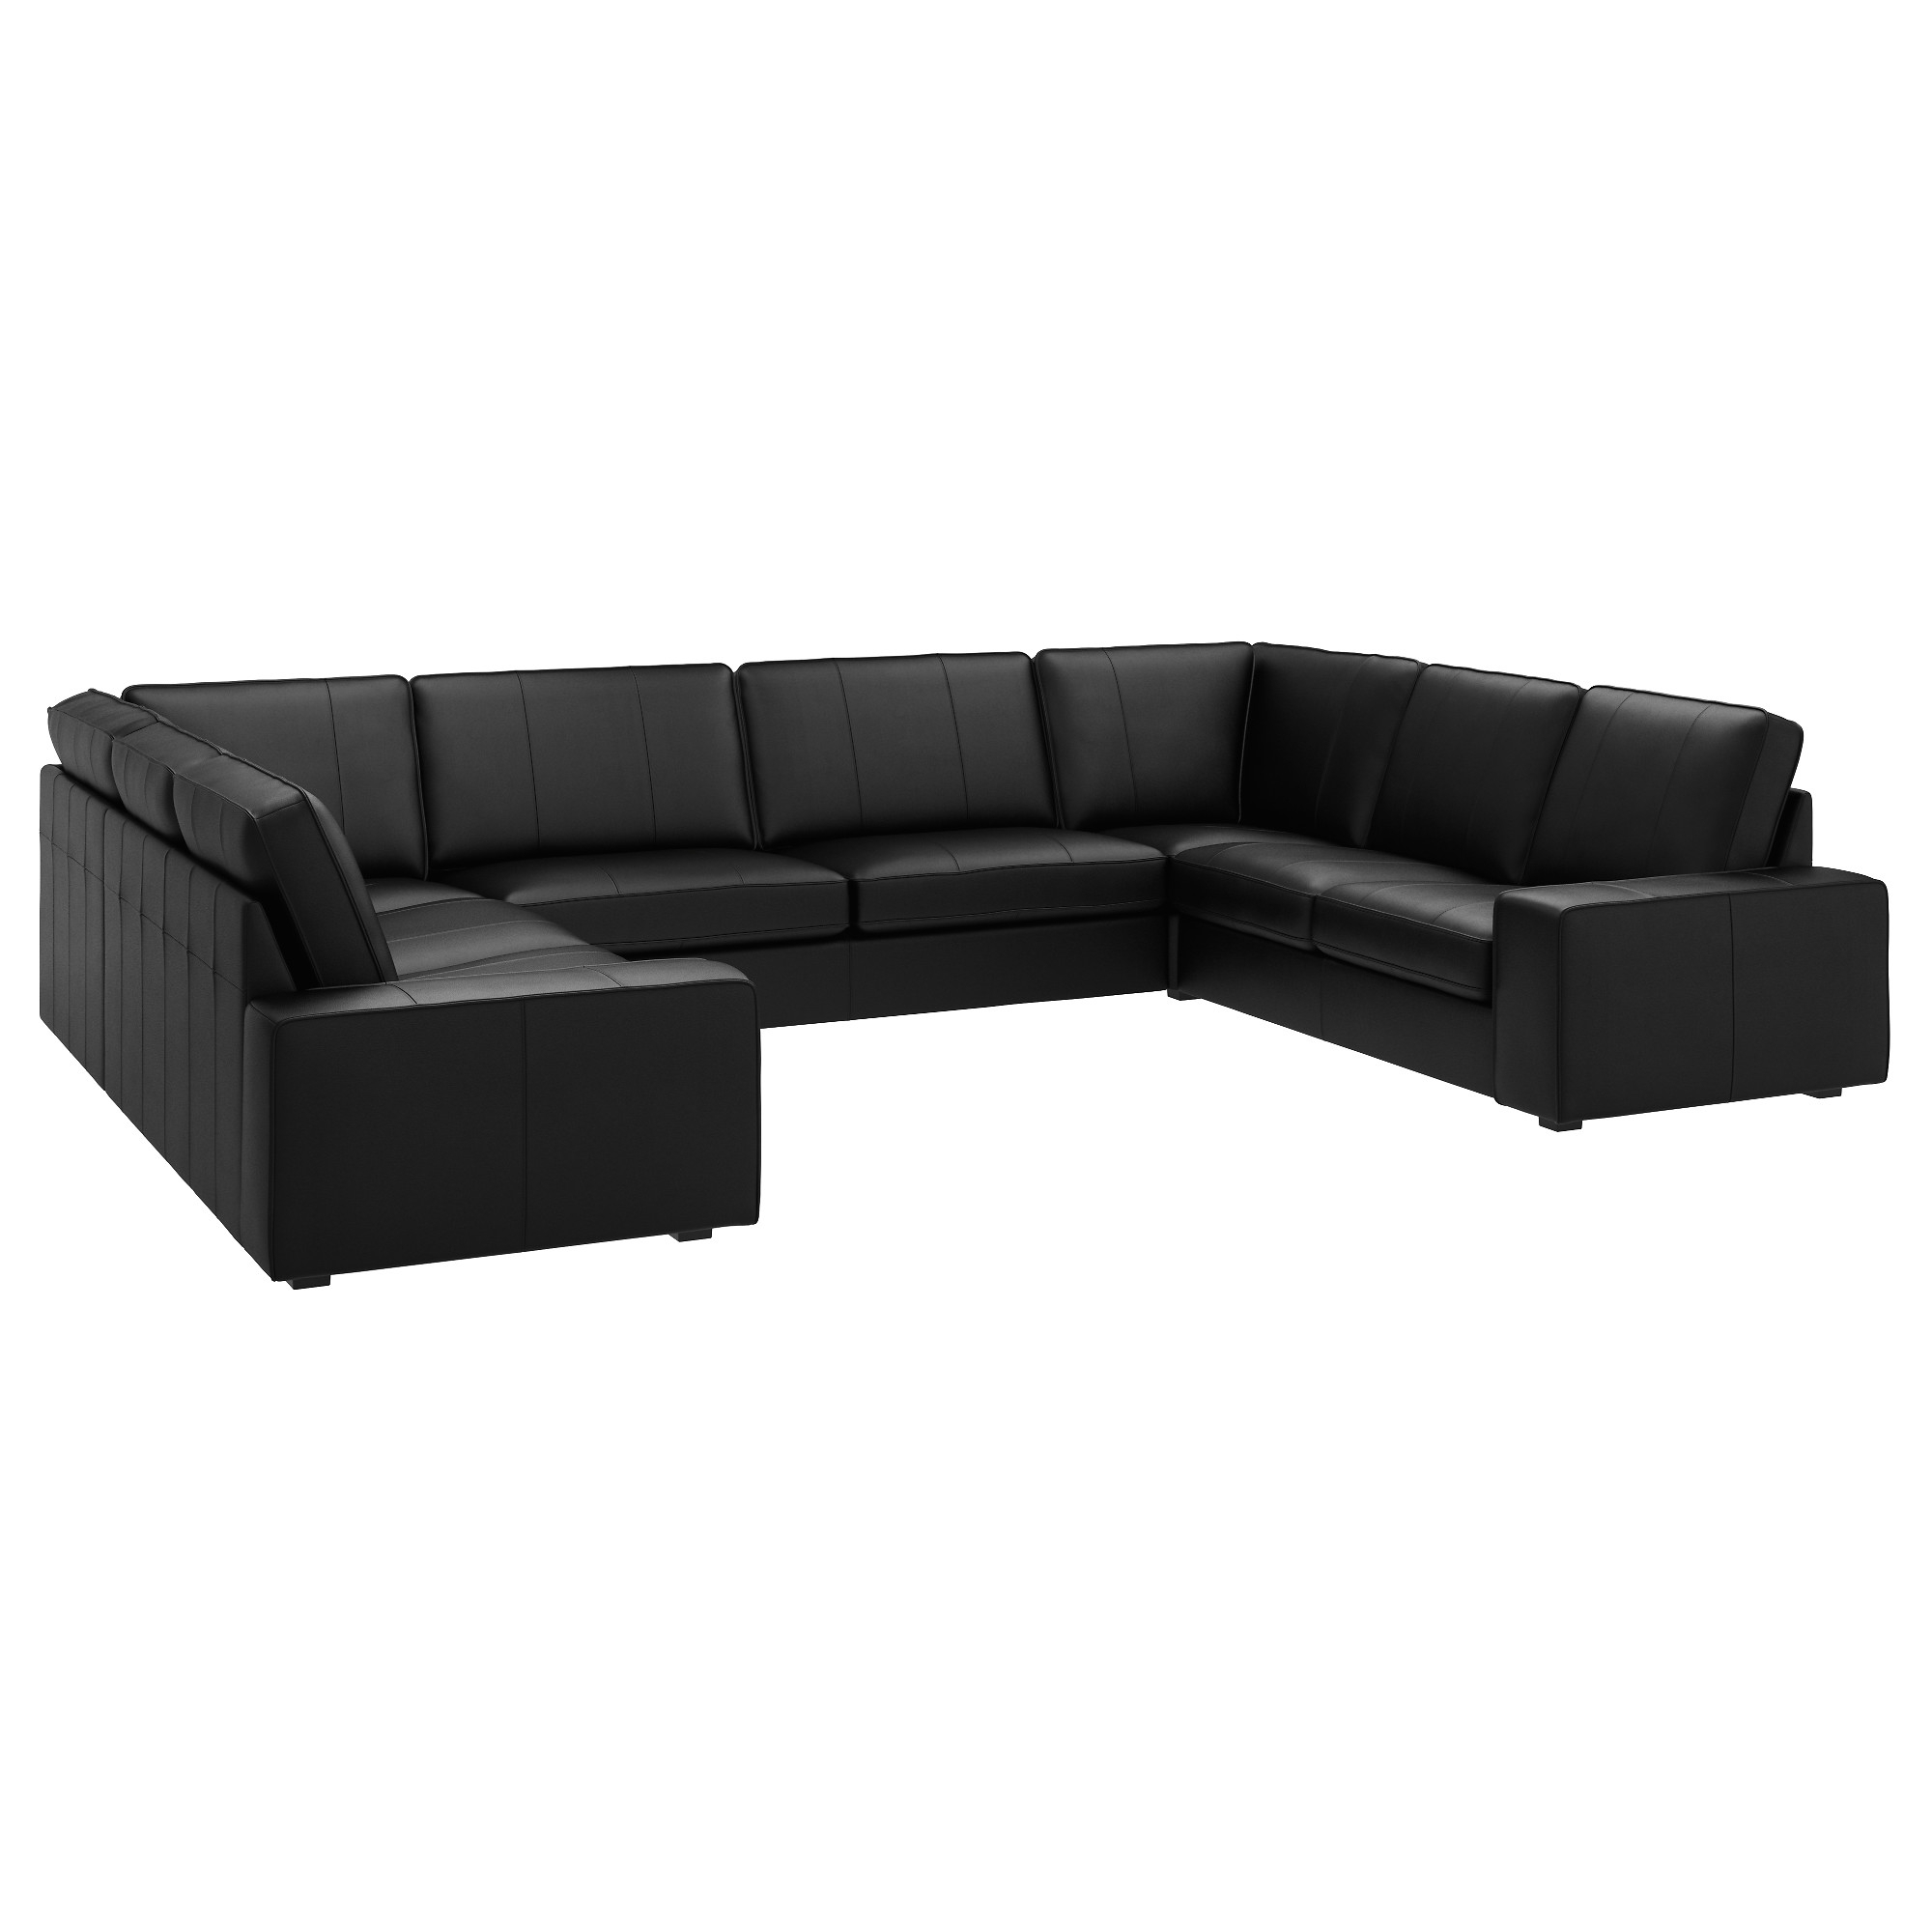 Well Liked 63 Most Endearing Kivik U Shaped Sofa Seat Grann Bomstad Black S Within Quatrine Sectional Sofas (View 13 of 15)